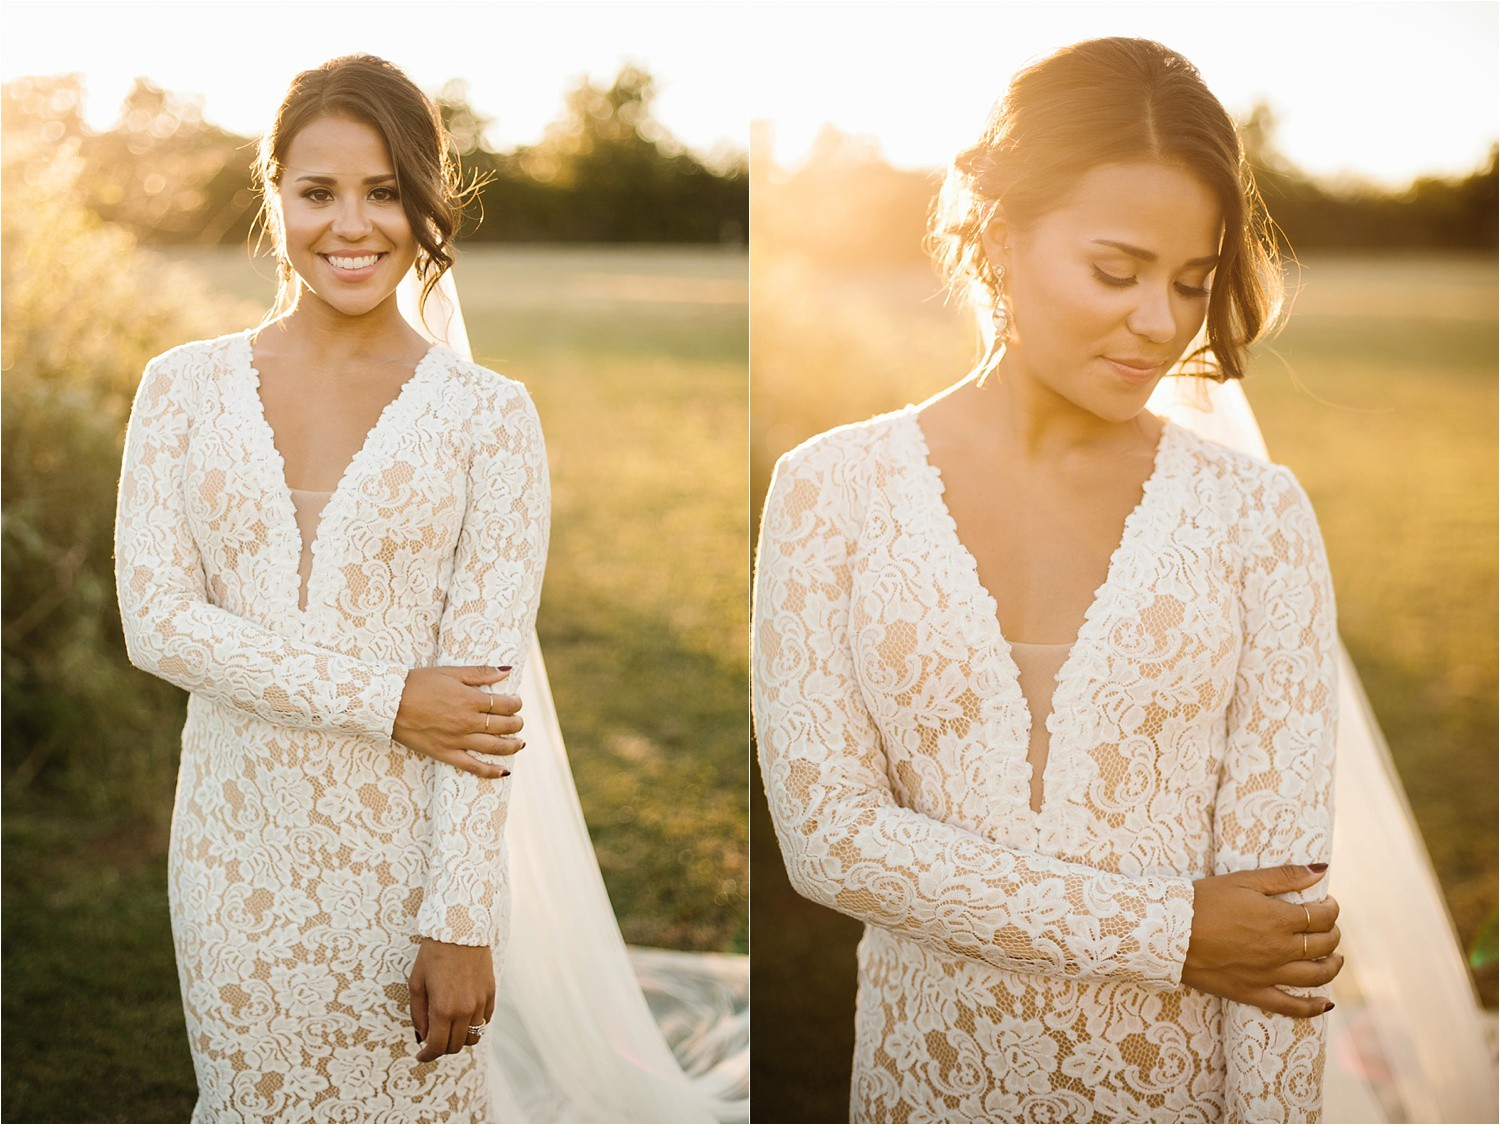 mallory-tyler-__-an-intimate-after-session-at-grapevine-lake-by-north-texas-wedding-photographer-rachel-meagan-photography-_-25